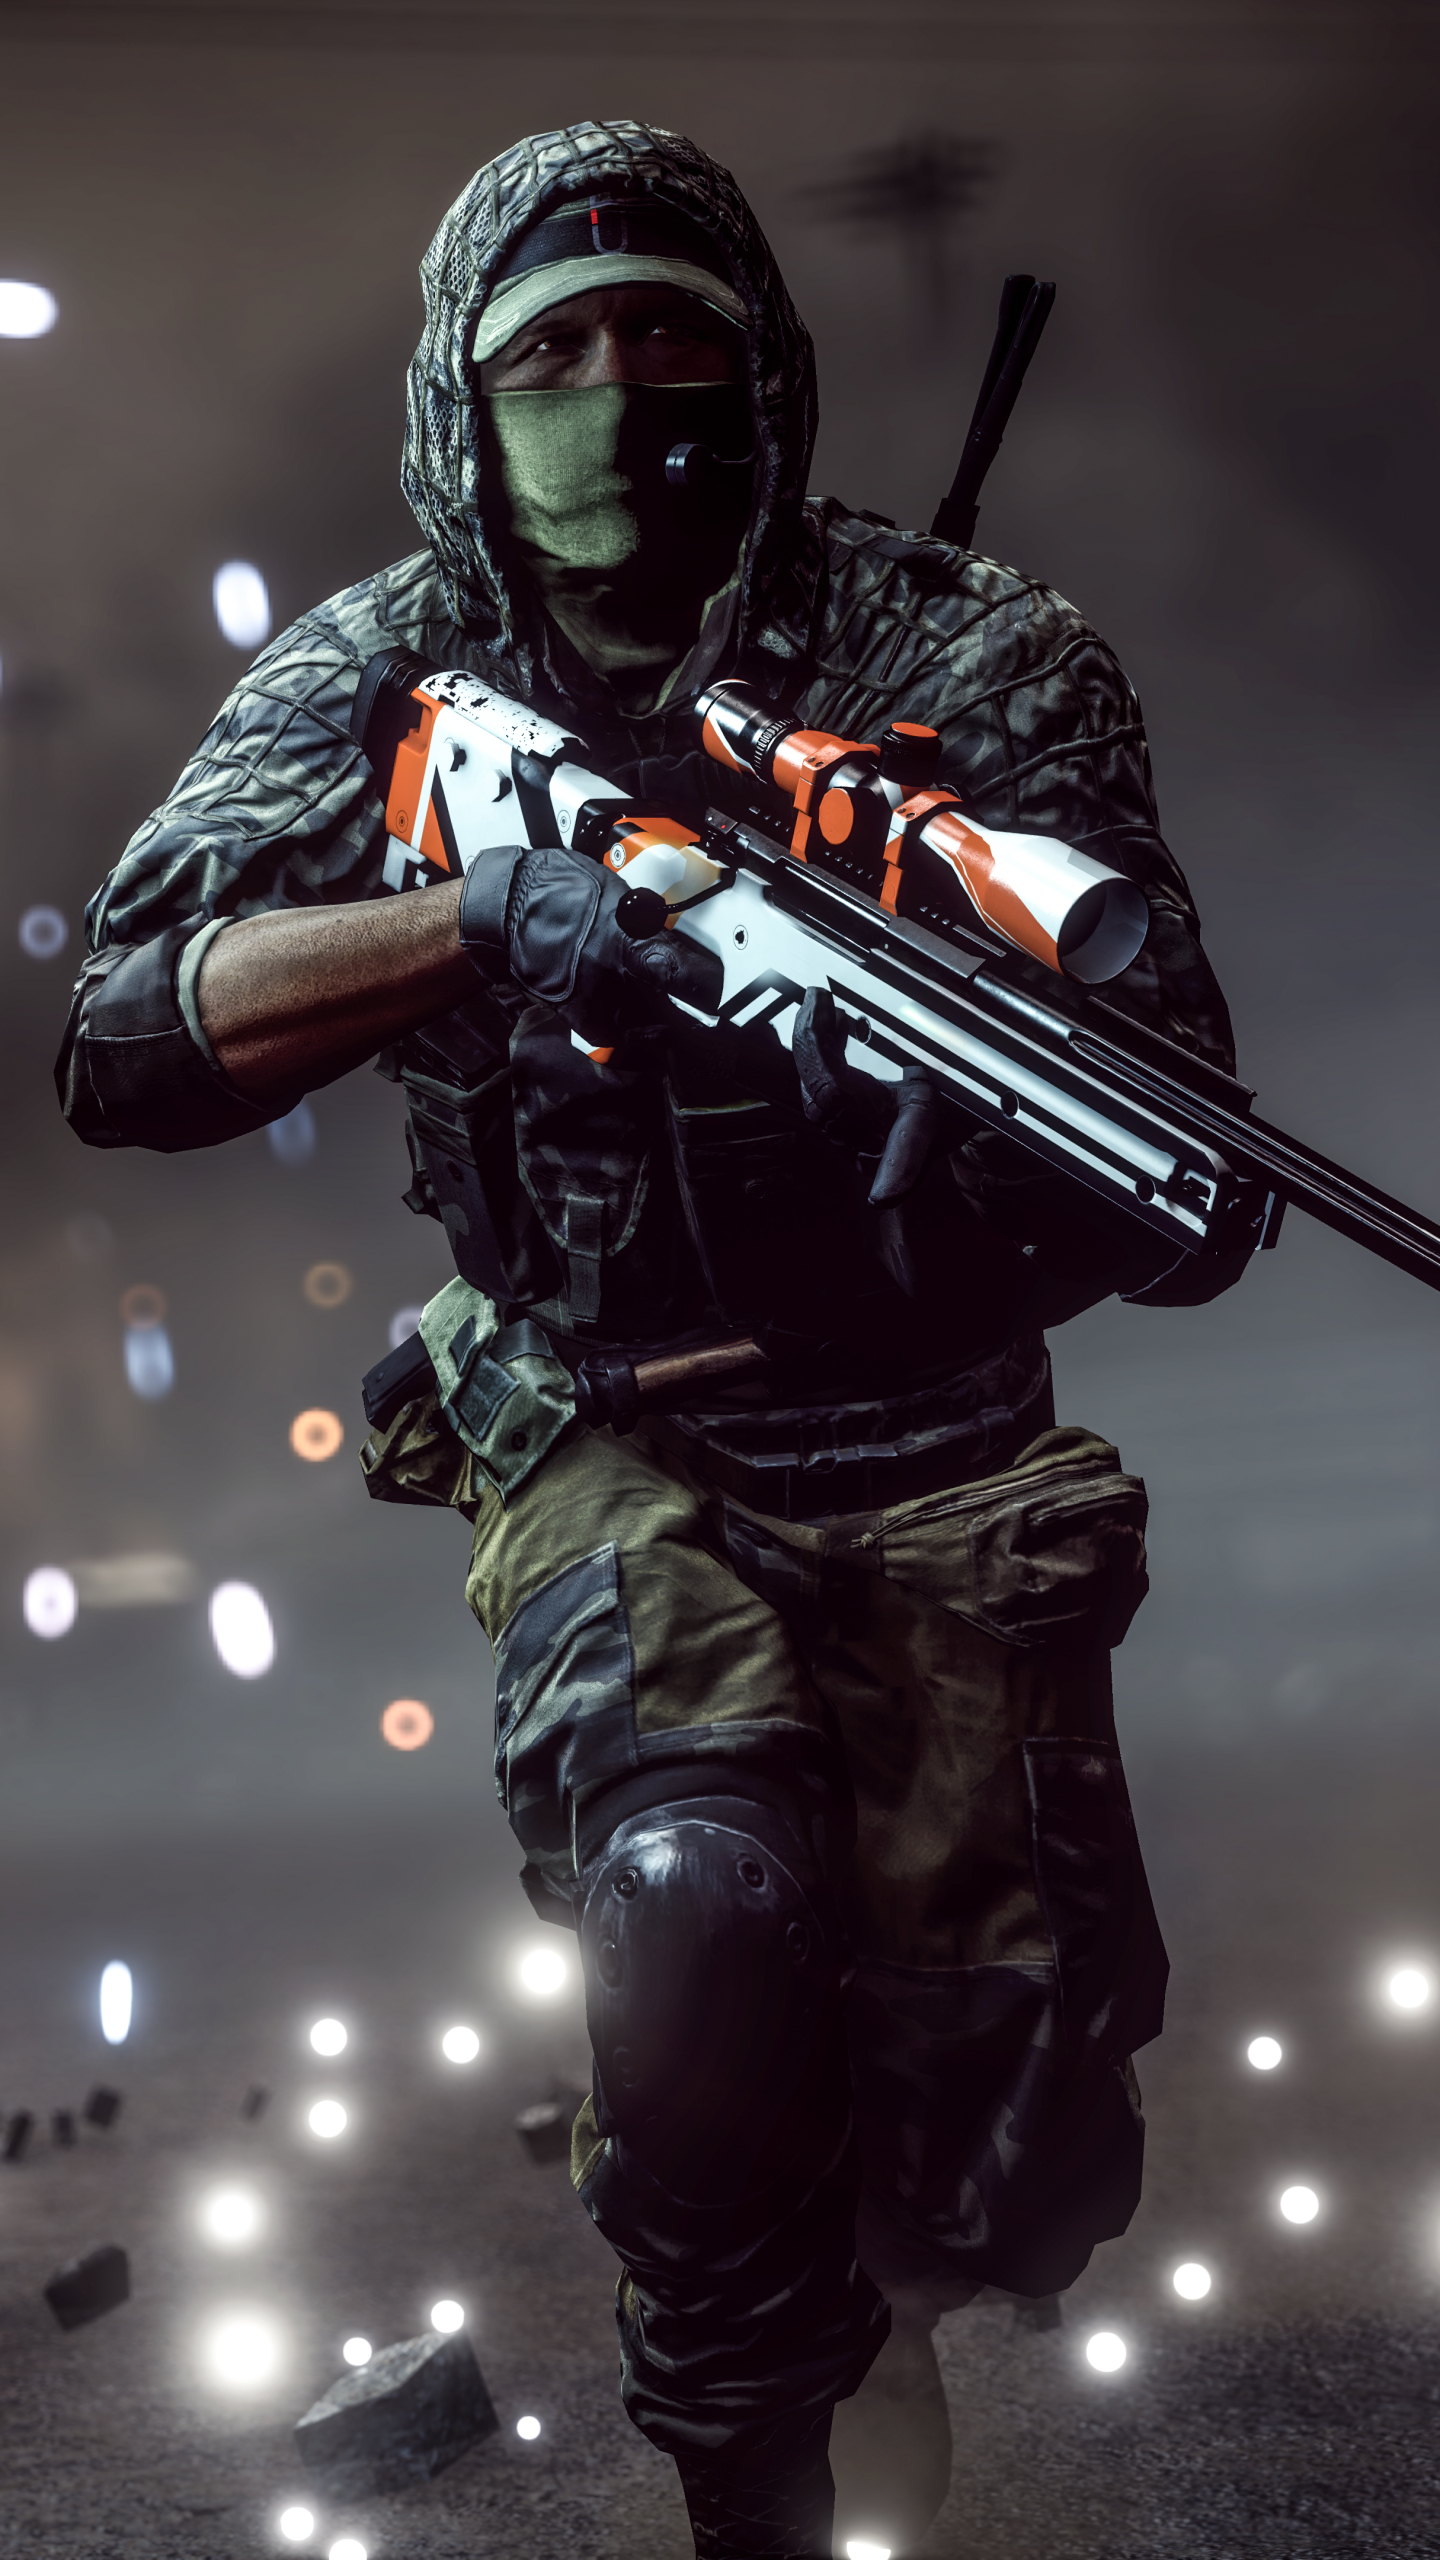 Video Game Battlefield 4 1080x1920 Wallpaper Id 634988 Mobile Abyss